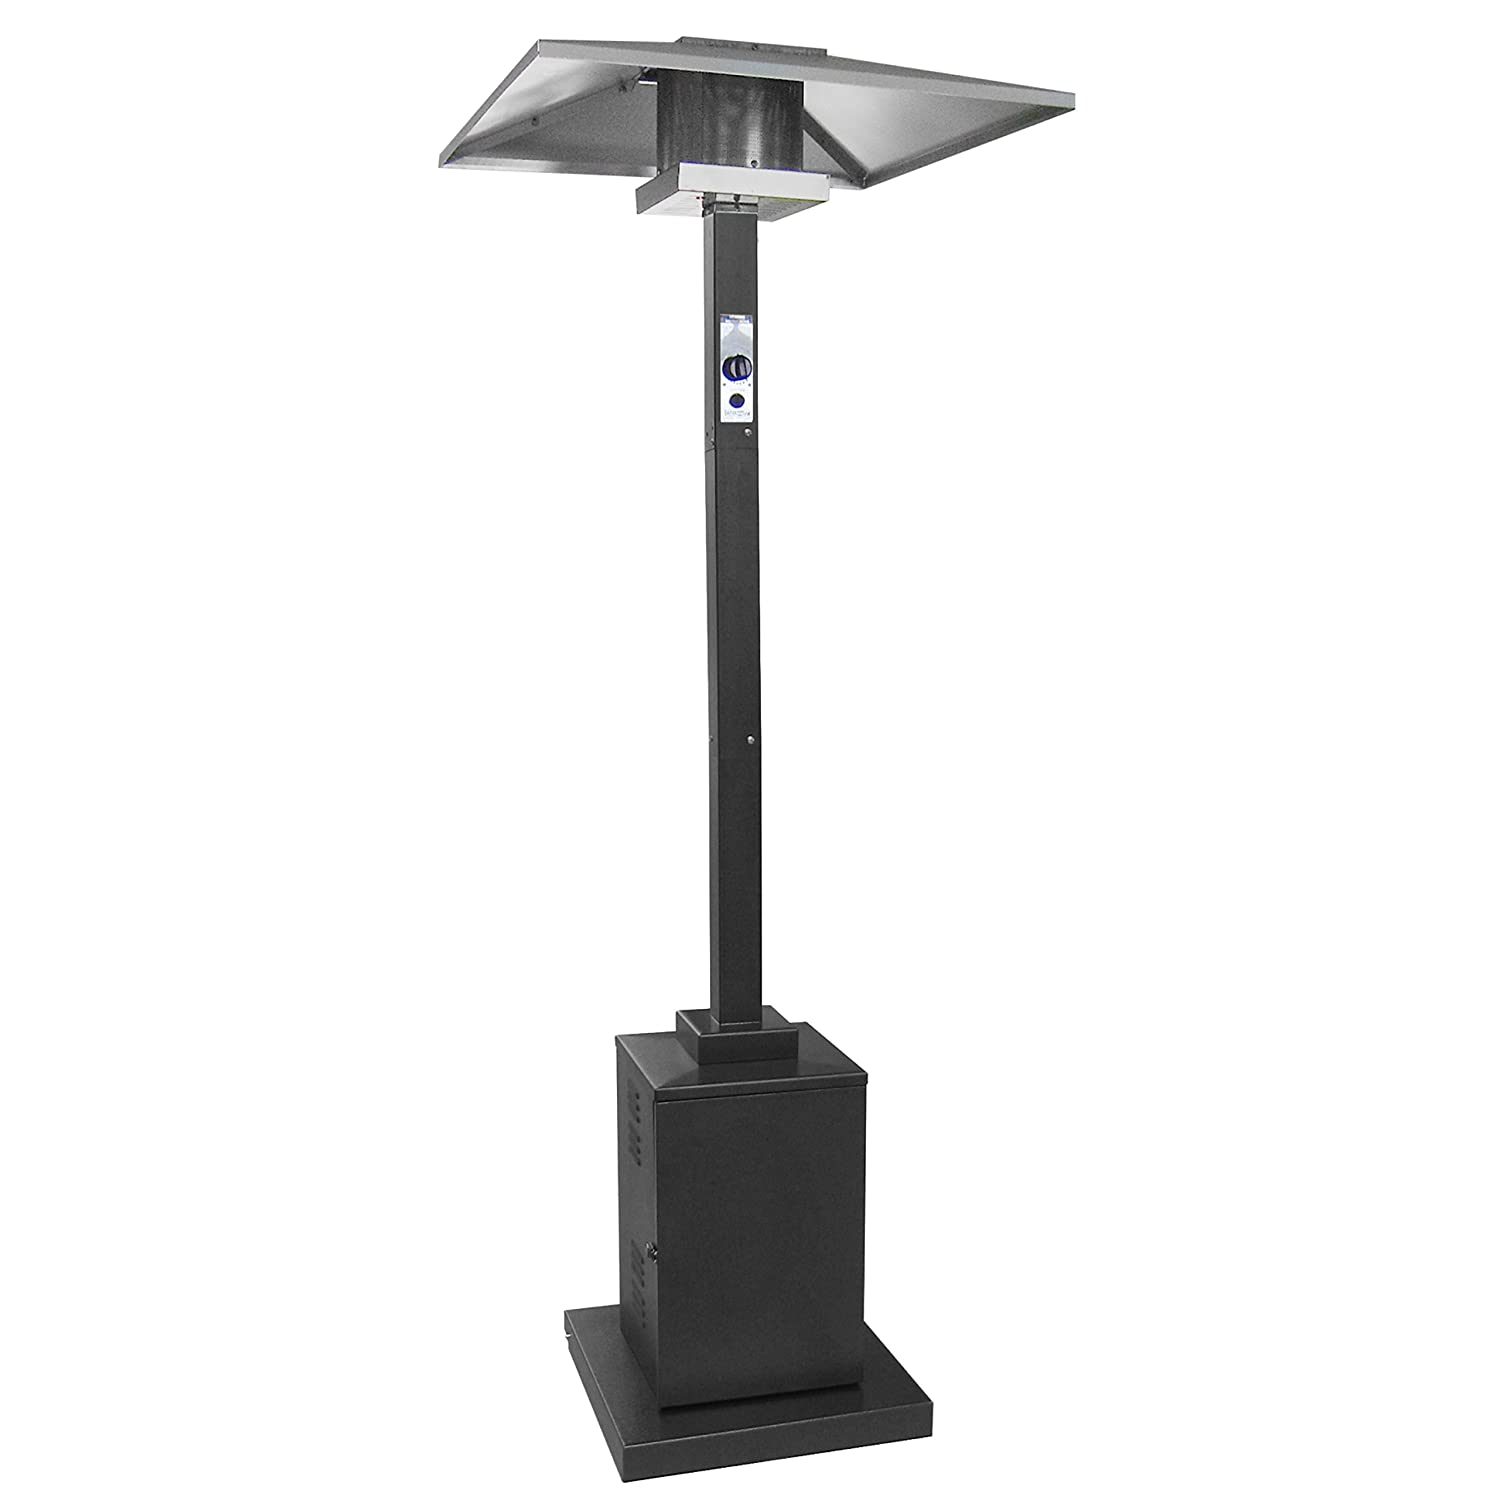 Amazon.com : AZ Patio Heaters Commercial Patio Heater in Black ...